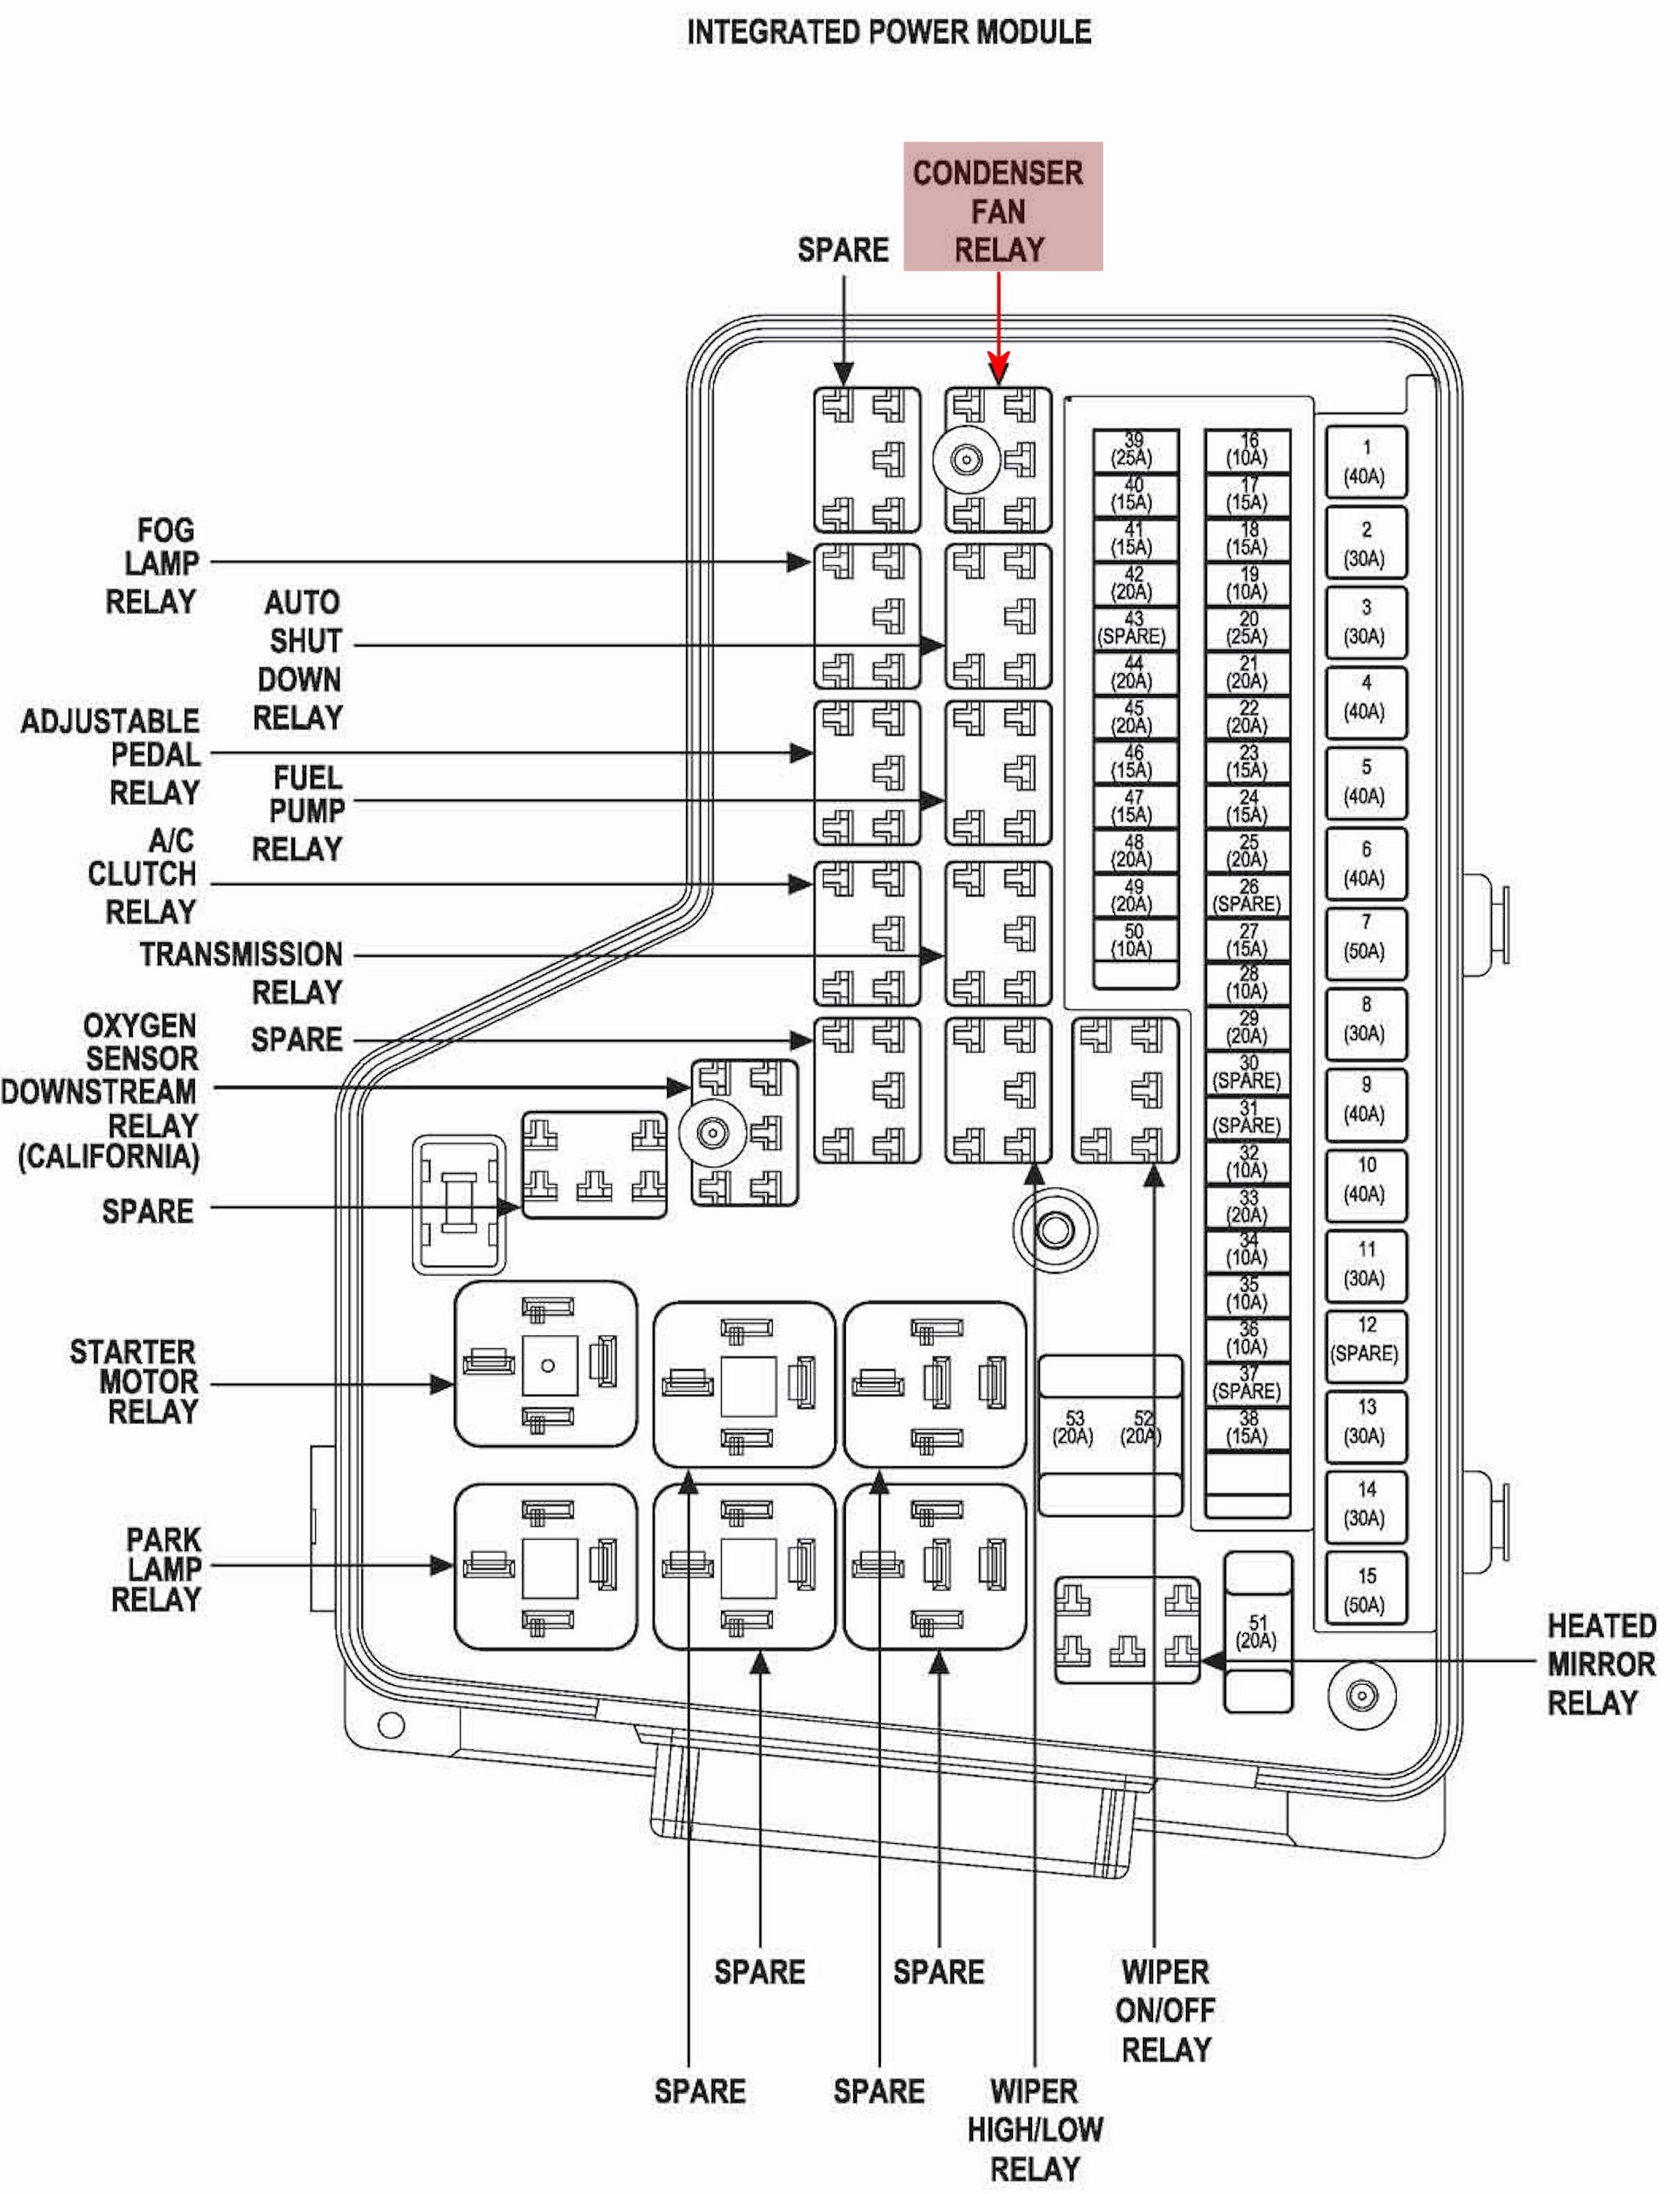 97 dodge ram 1500 fuse box panel car wiring diagrams explained u2022 rh  ethermag co 2010 dodge ram 1500 fuse box location 1998 Dodge Ram 1500 Fuse  Box